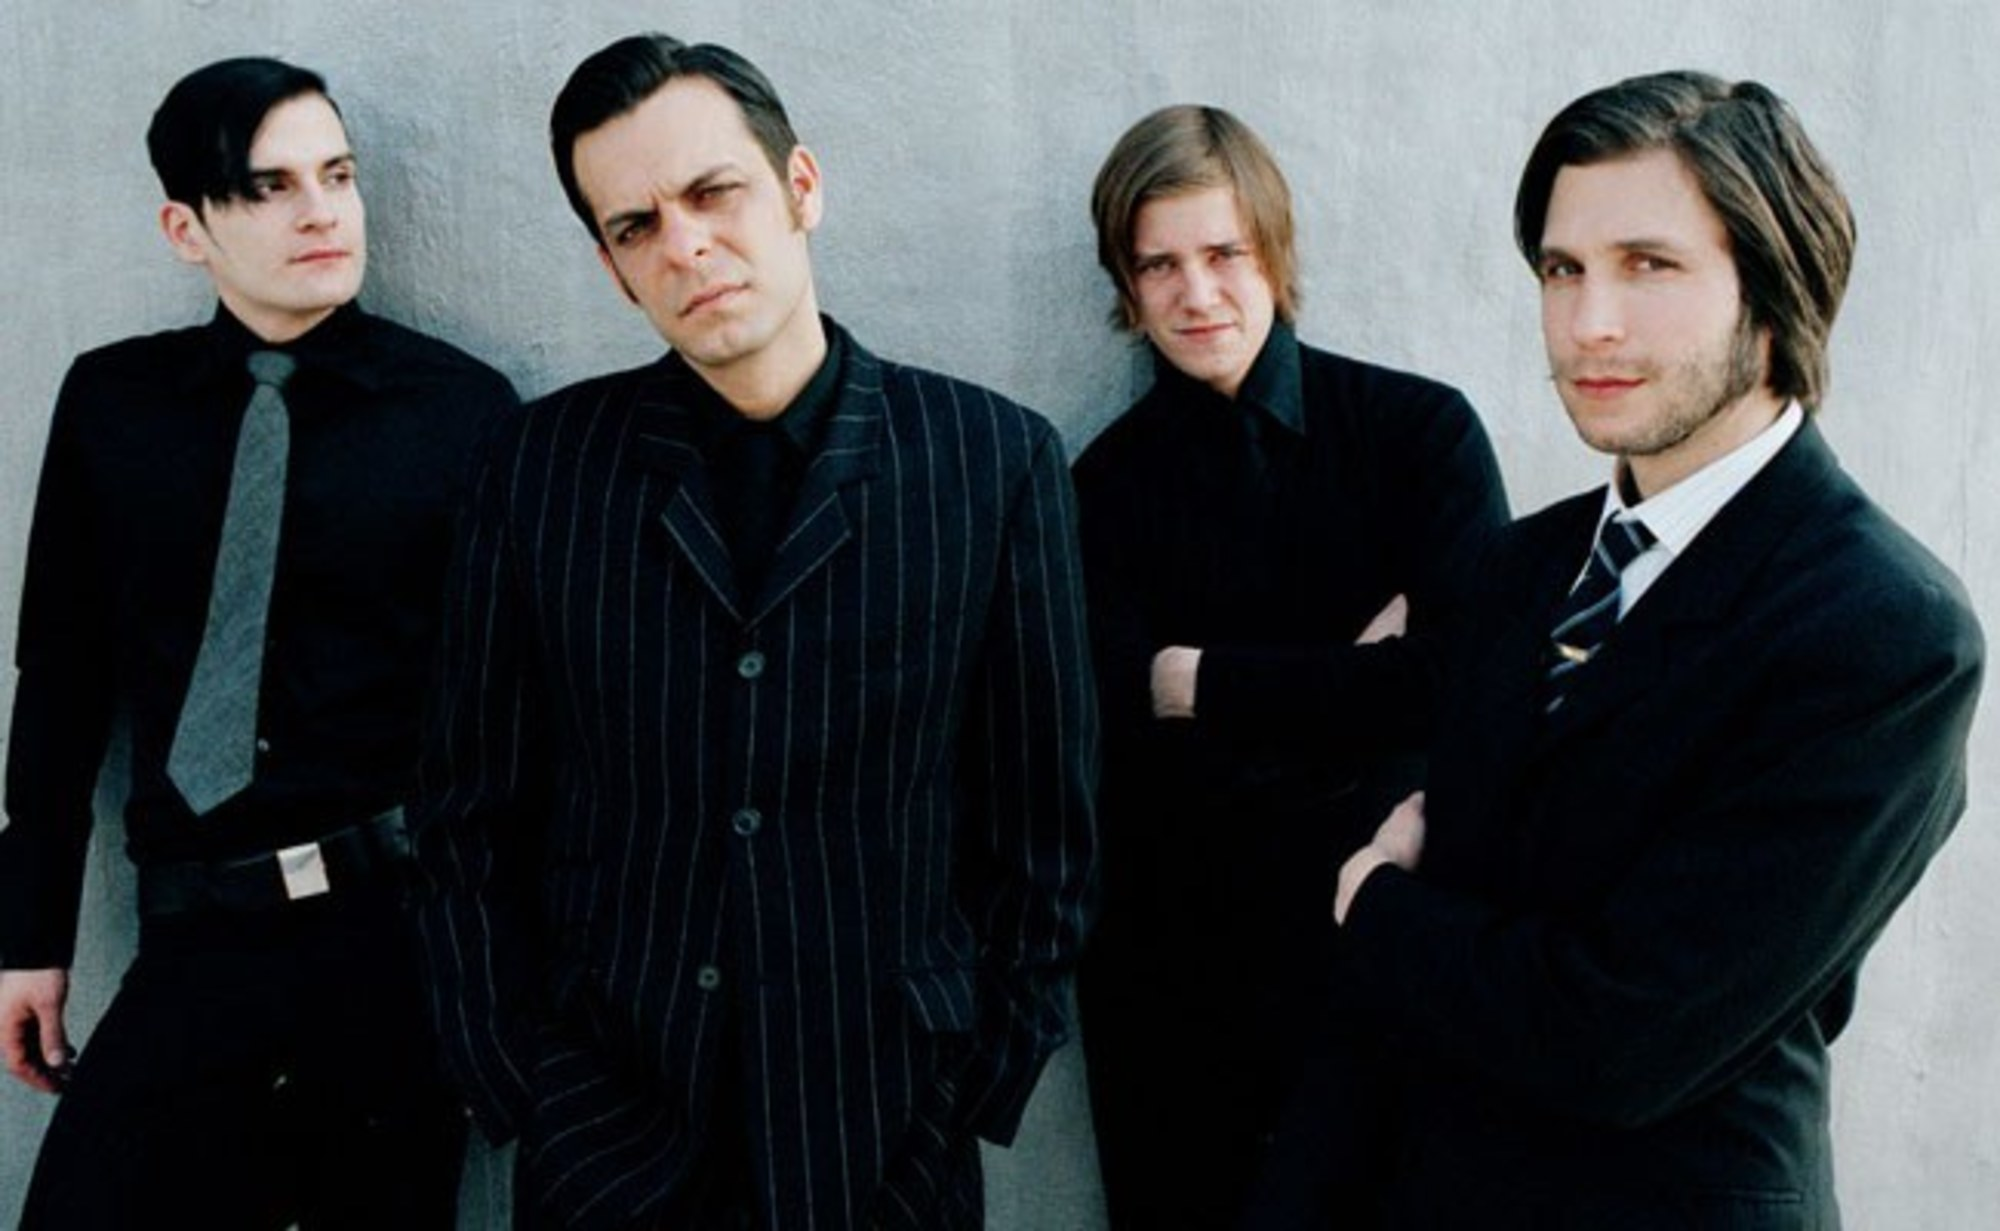 Interpol with Carlos Dengler